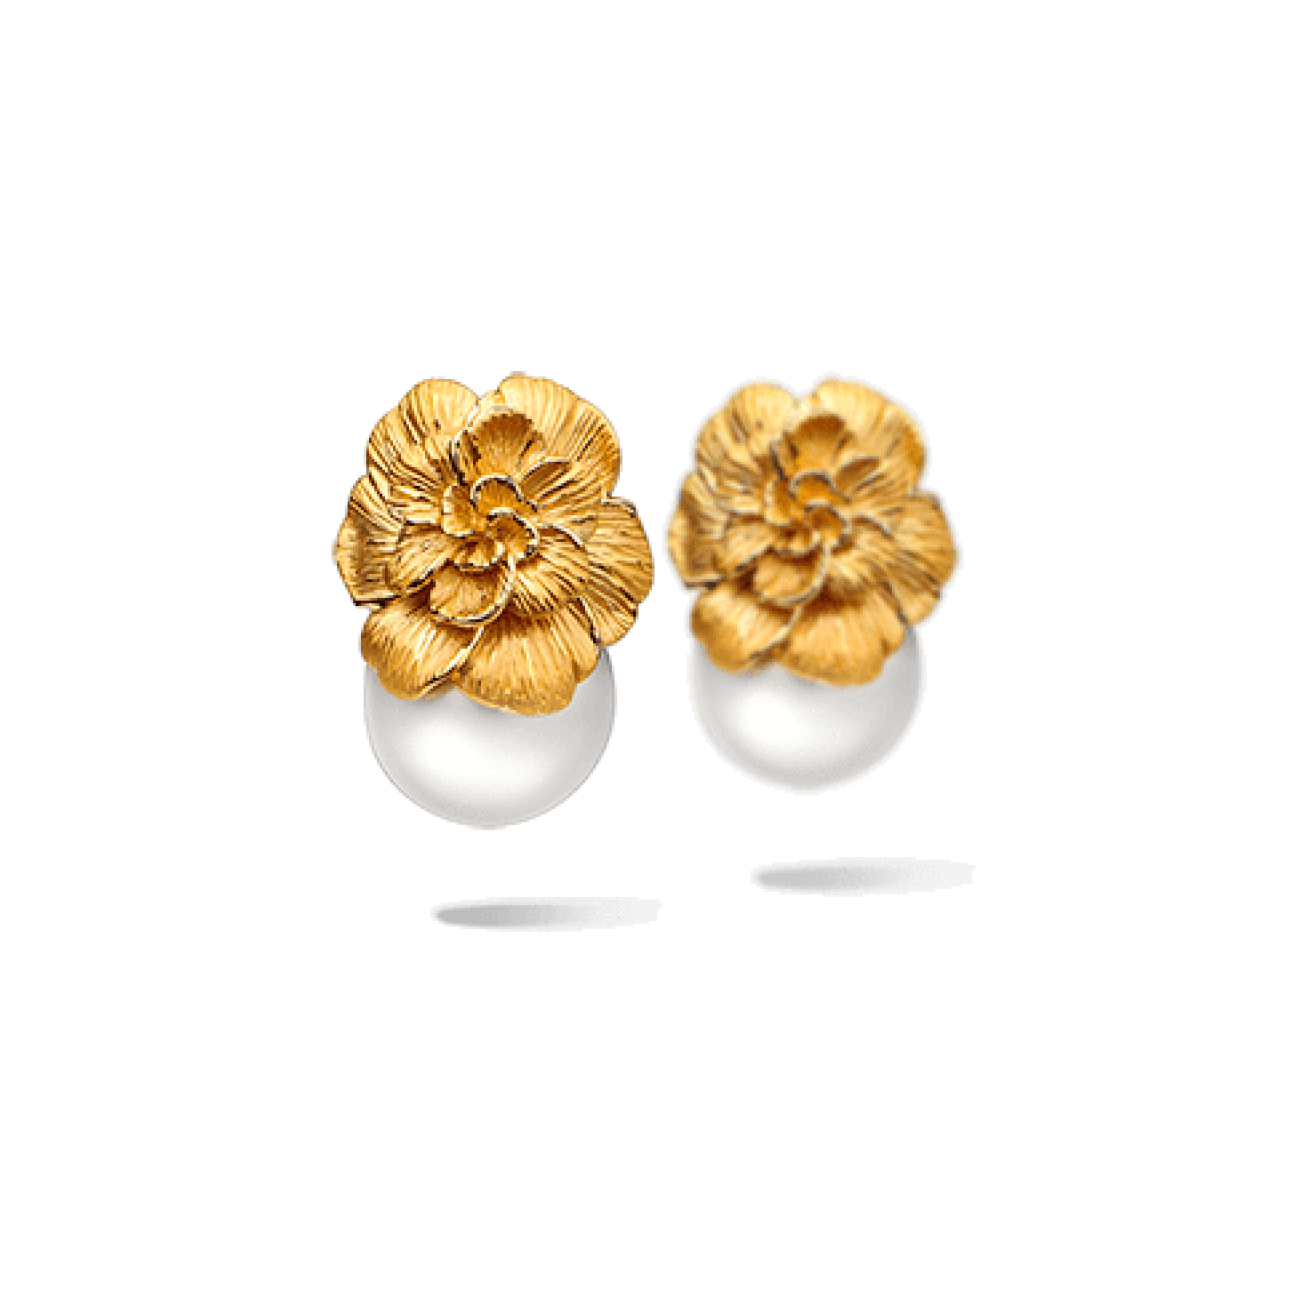 Carrera Y Carrera Jewelry - Gardenia Earrings | Manfredi Jewels